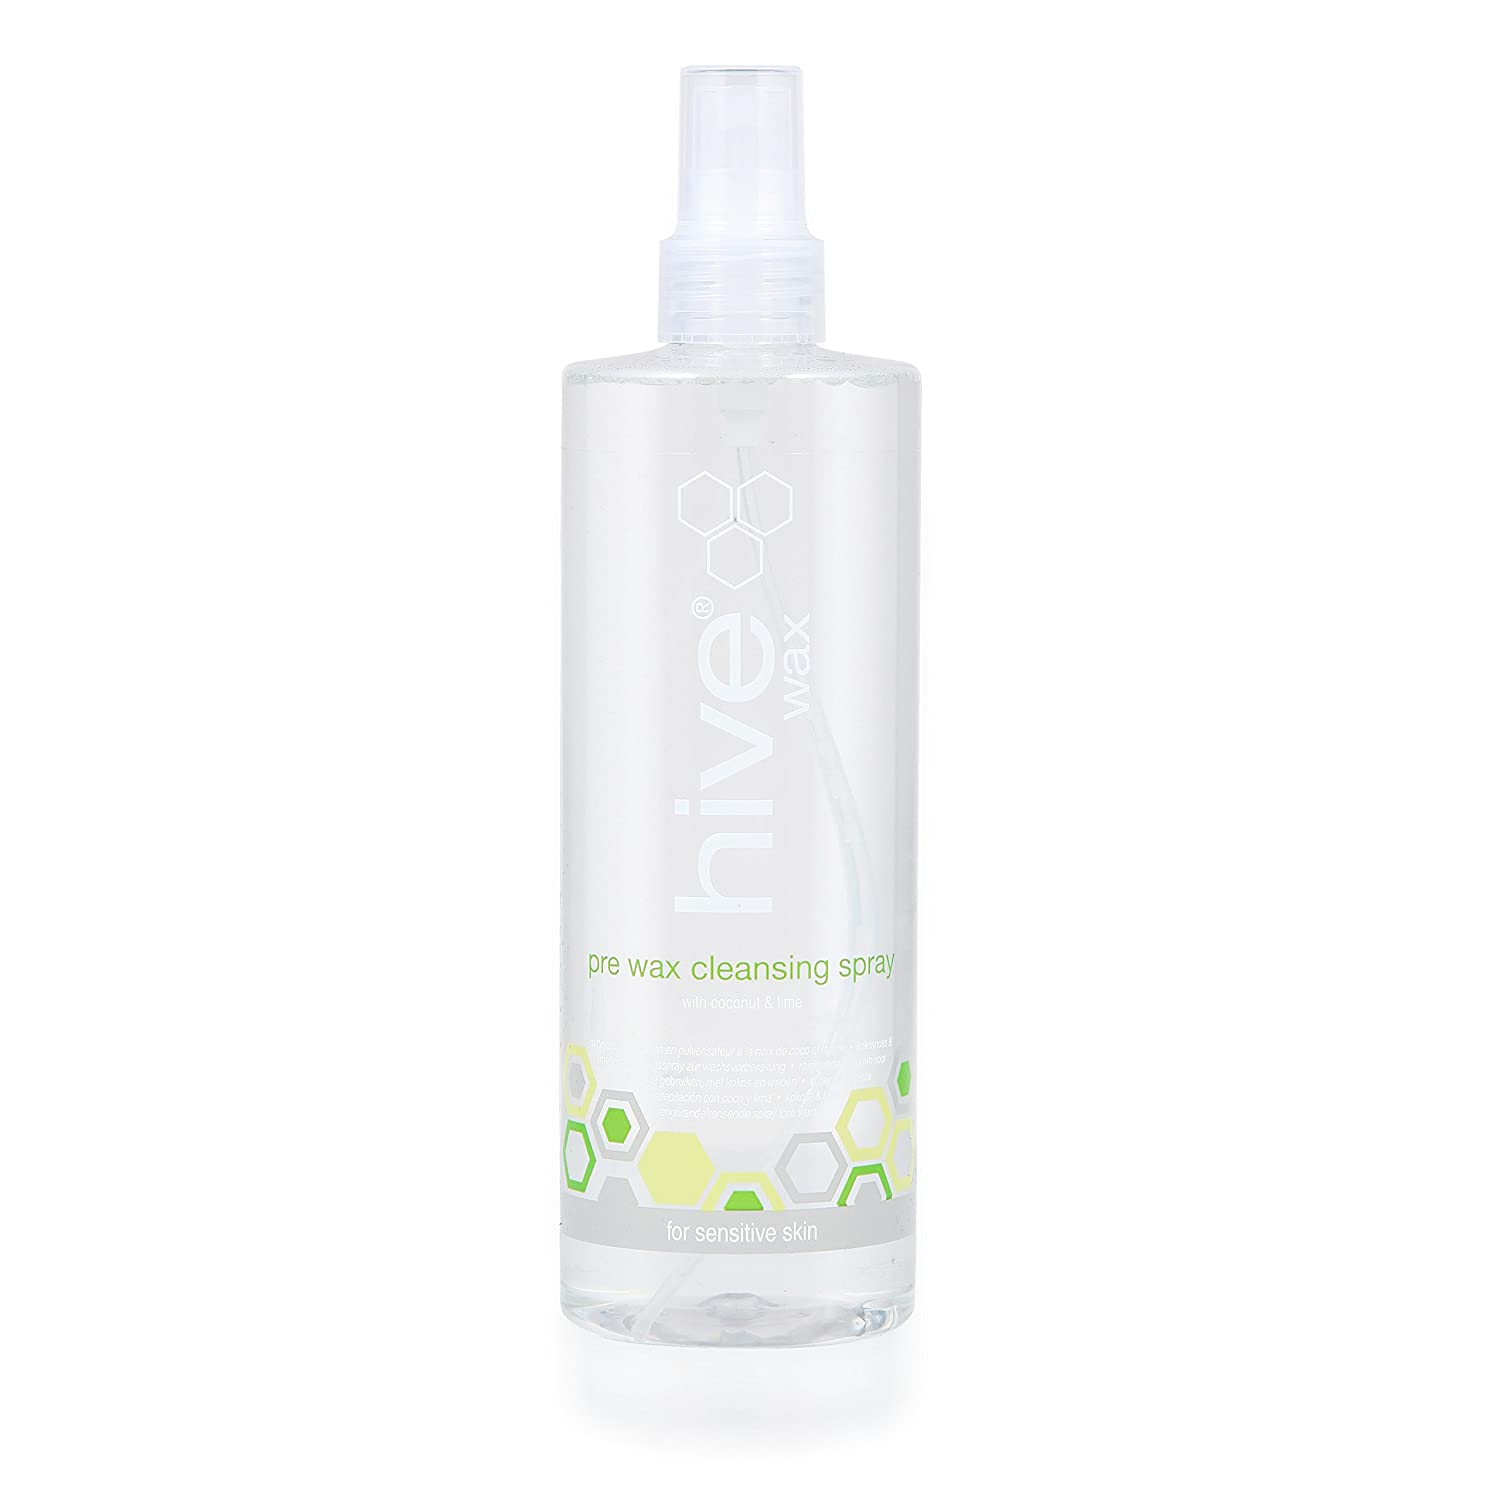 Hive of Beauty Pre Wax Cleansing Spray with Coconut and Lime, 400 ml HOB1105